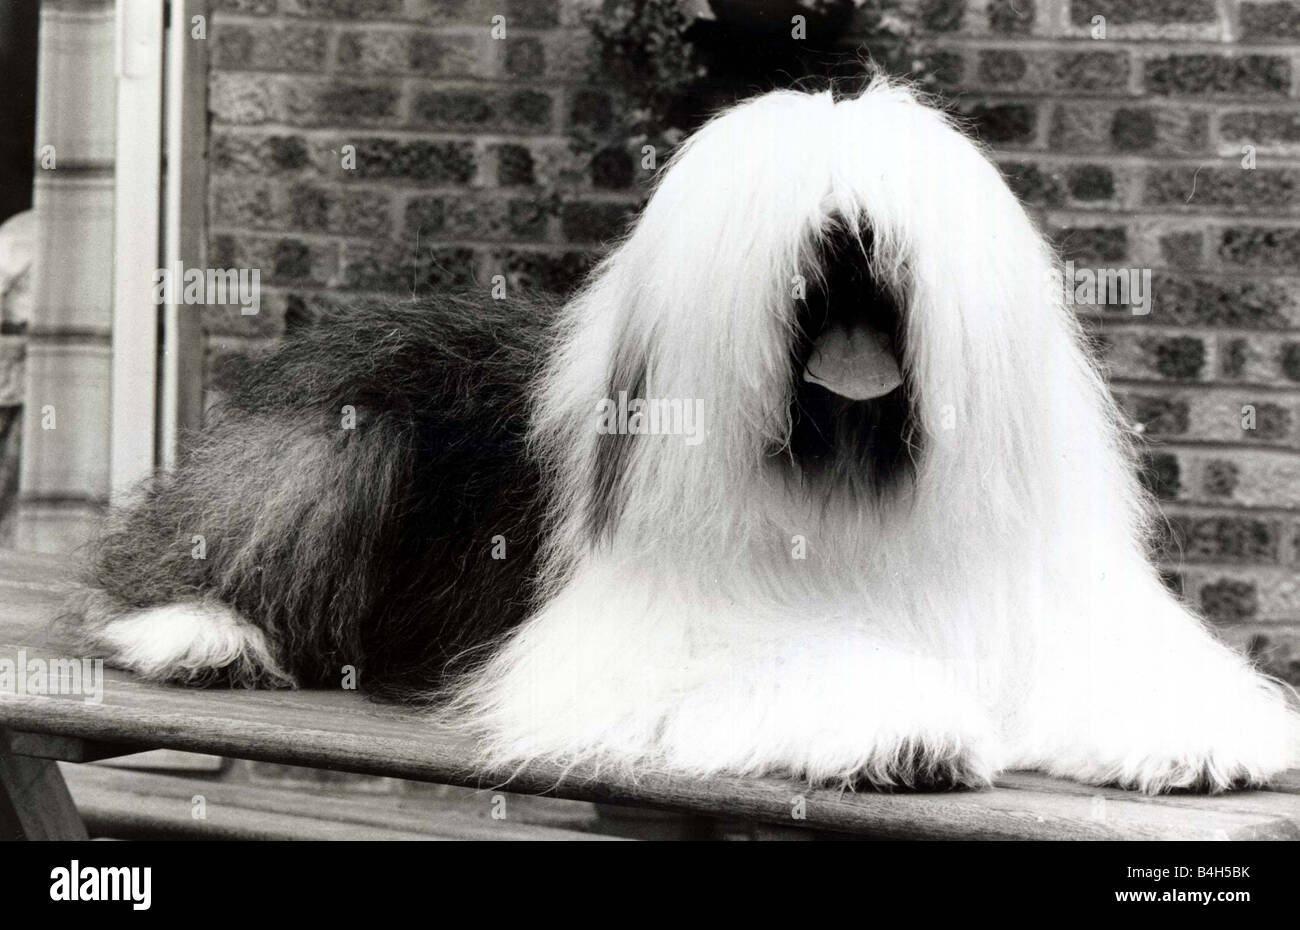 Television Star Dog Duke Aged 9 Is Appearing In The Famous Paint Ads His Owner Dawn Hutchinson Sheepdog June 1984 Mirrorpix